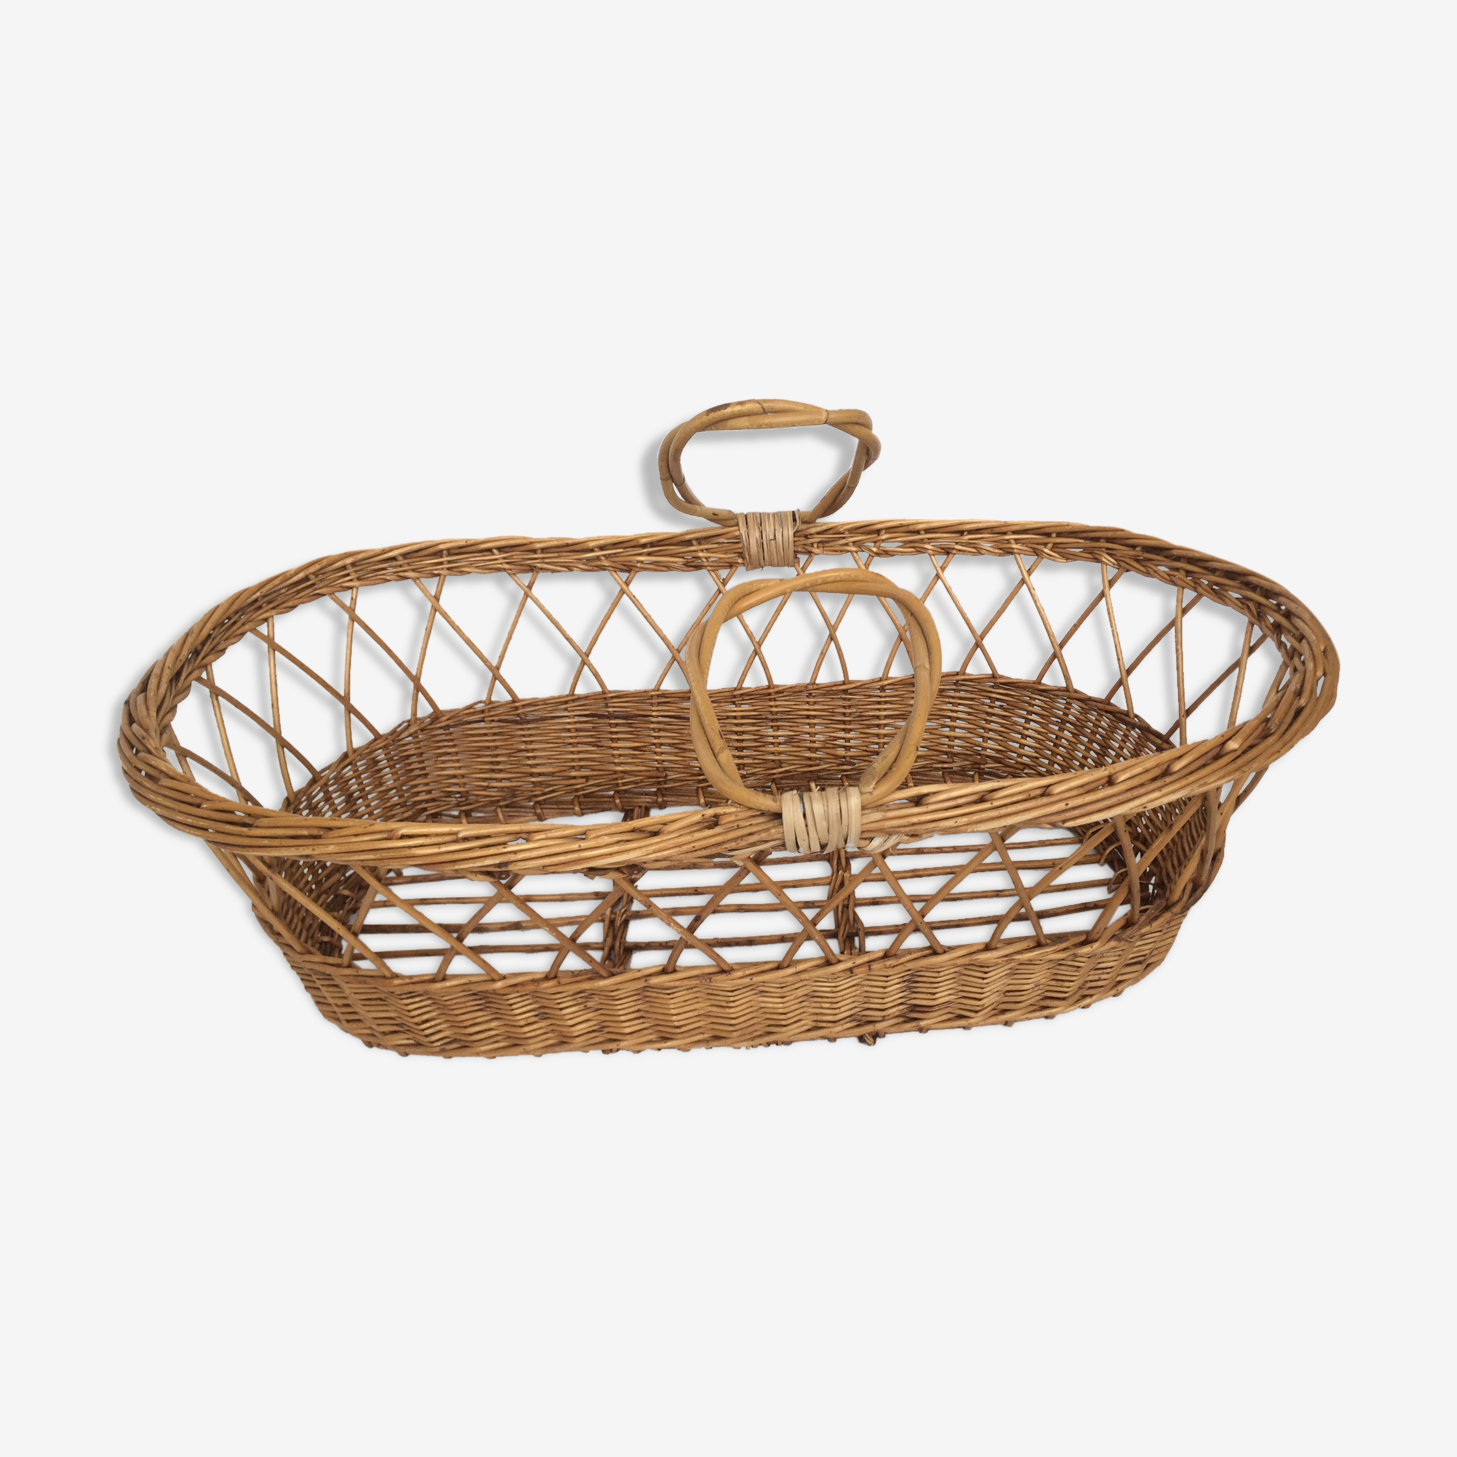 Bassinet in rattan, his mattress, pillow and bed linens